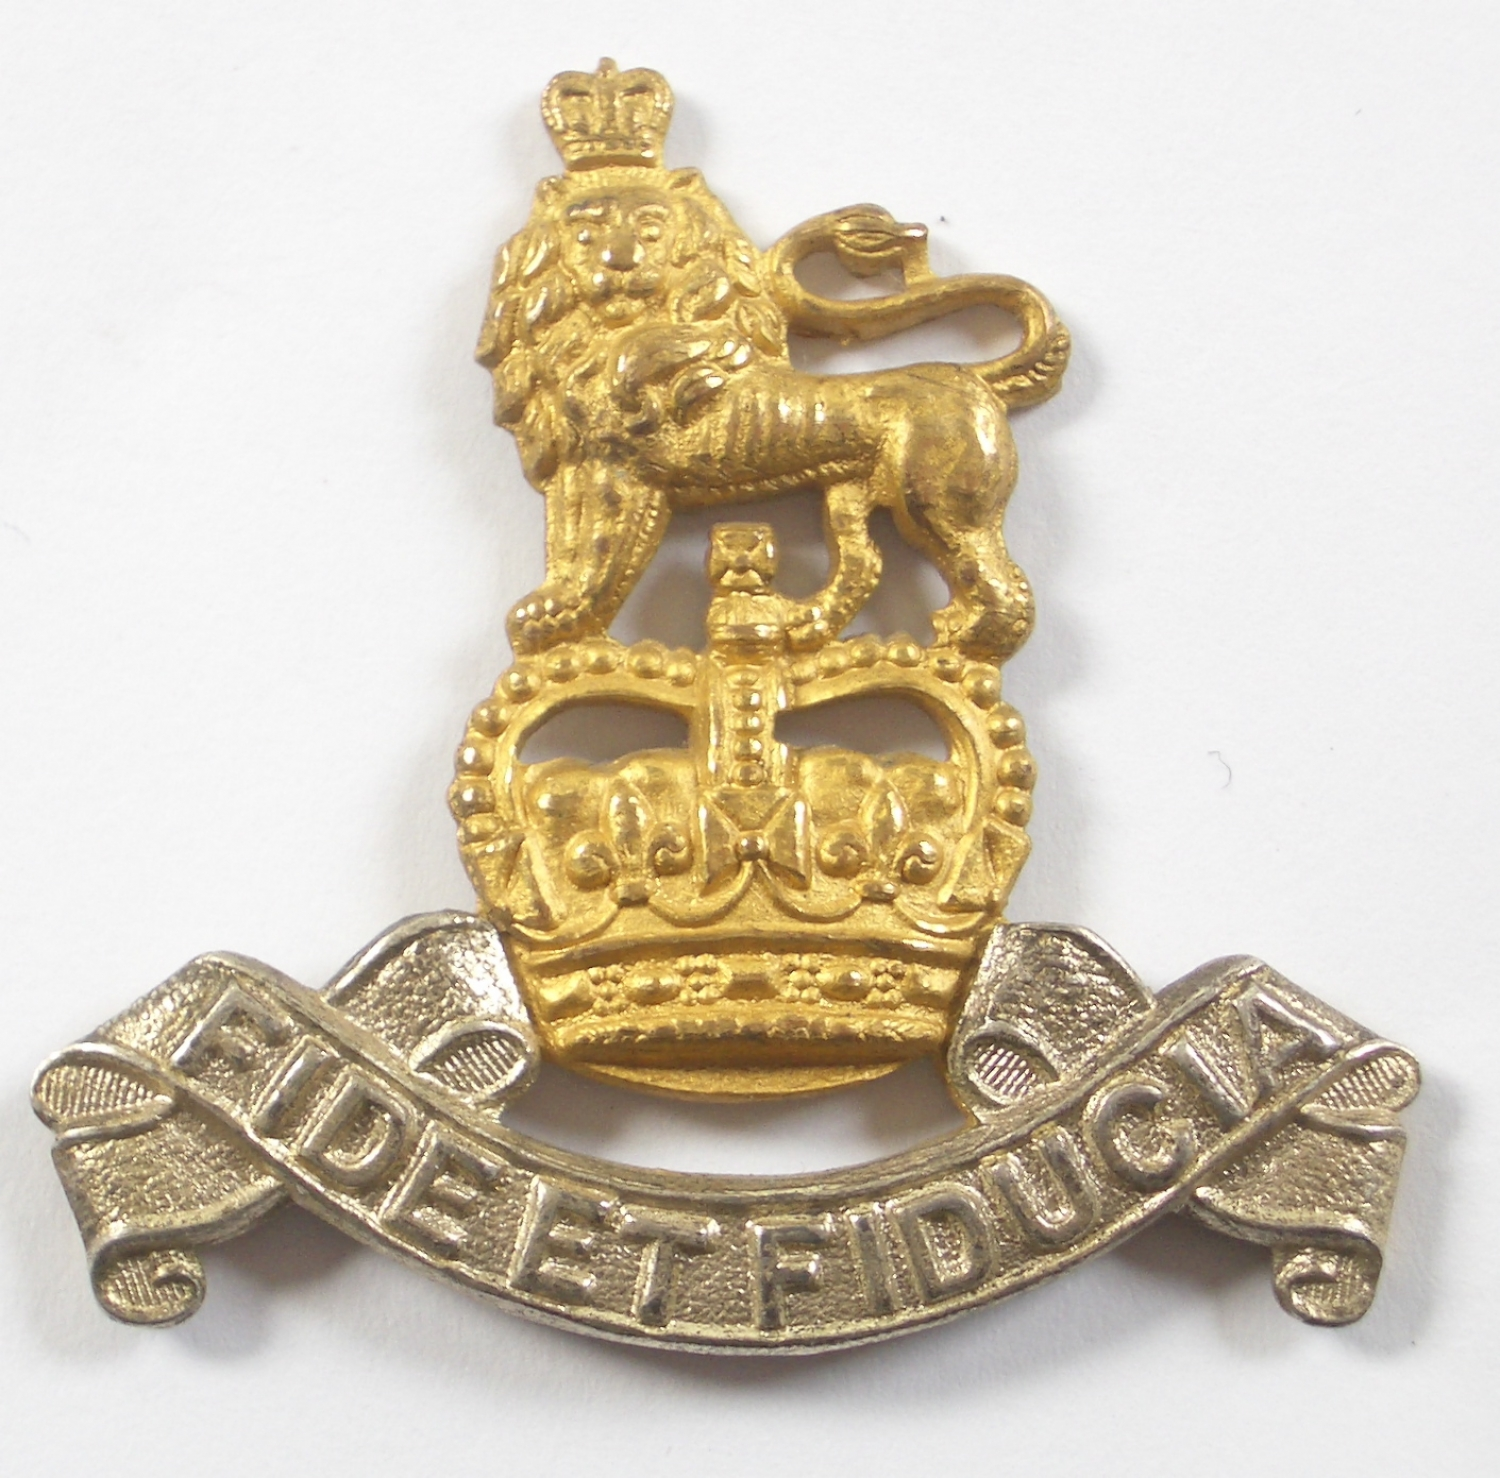 Royal Army Pay Corps Officer's cap badge